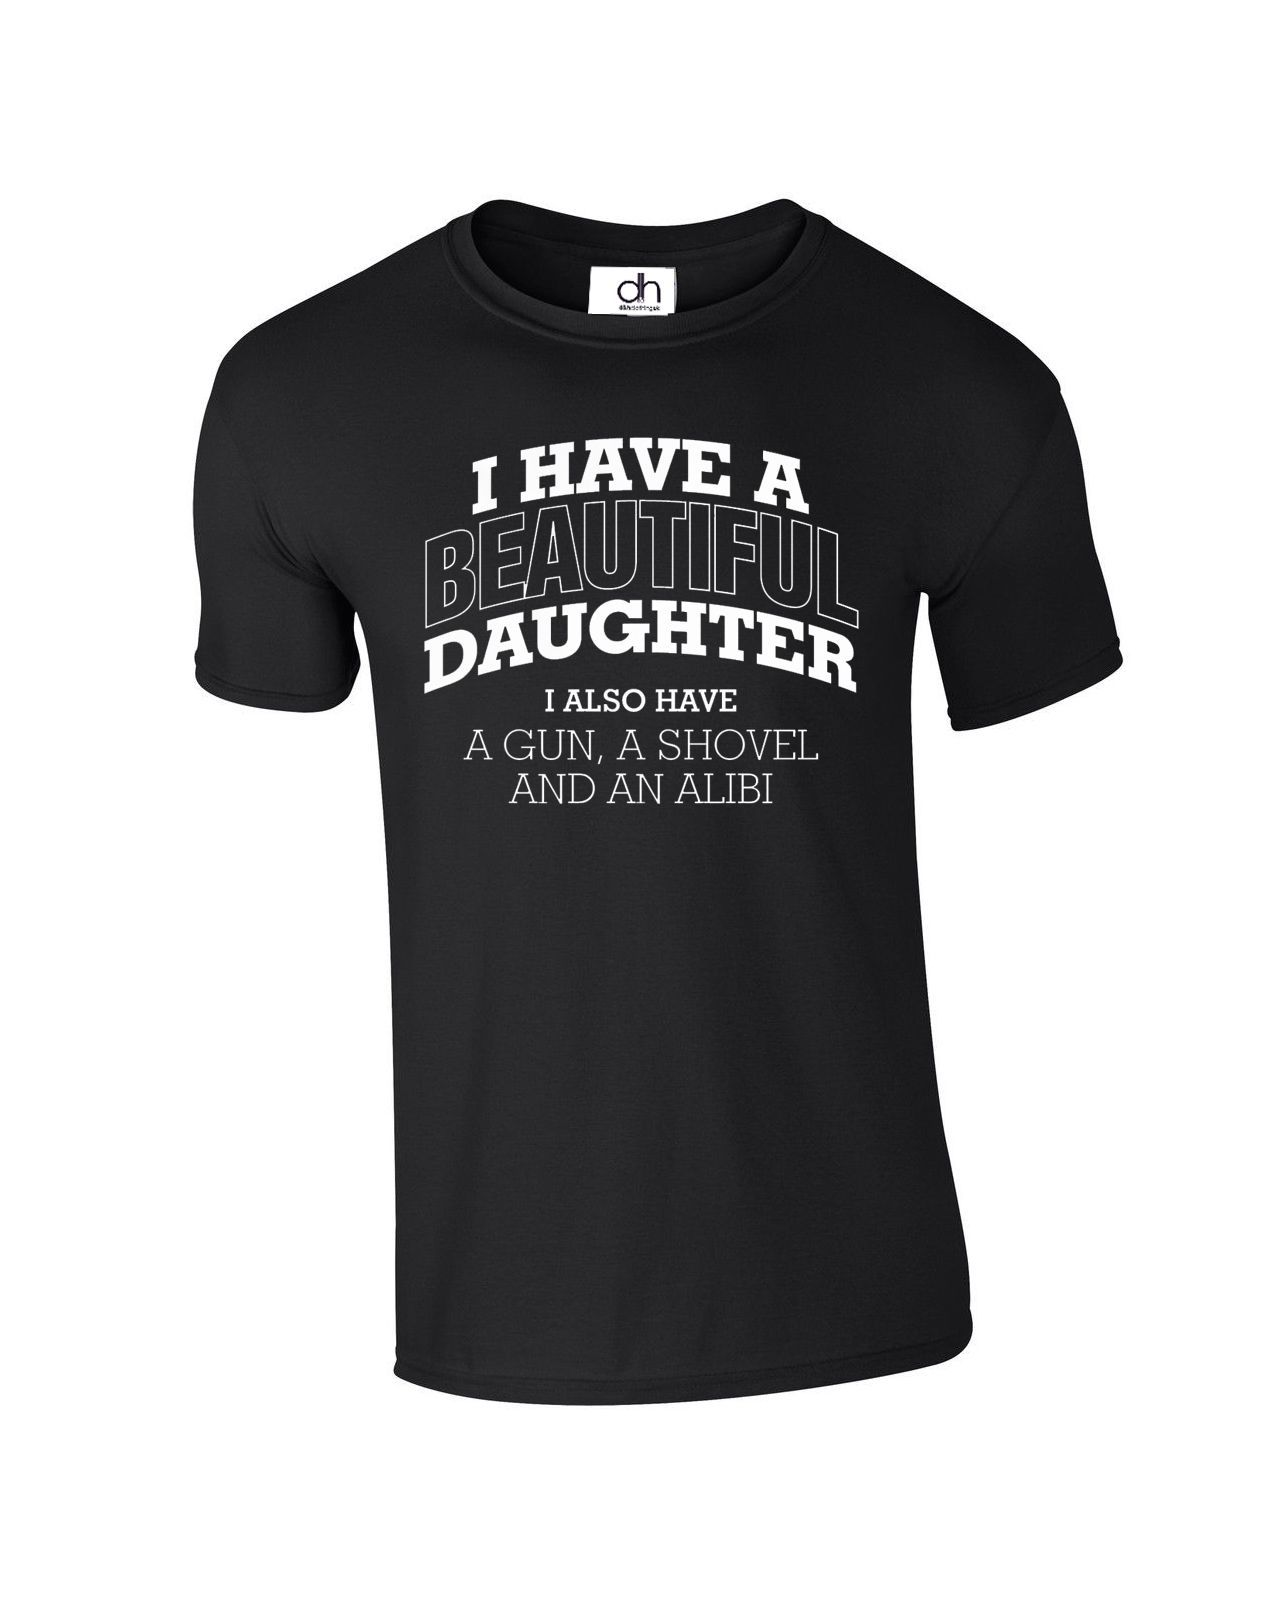 I HAVE A BEAUTIFUL DAUGHTER T-Shirt Fathers day Dad Gift top (BEAUTIFUL,TSHIRT) New T Shirts Funny Tops